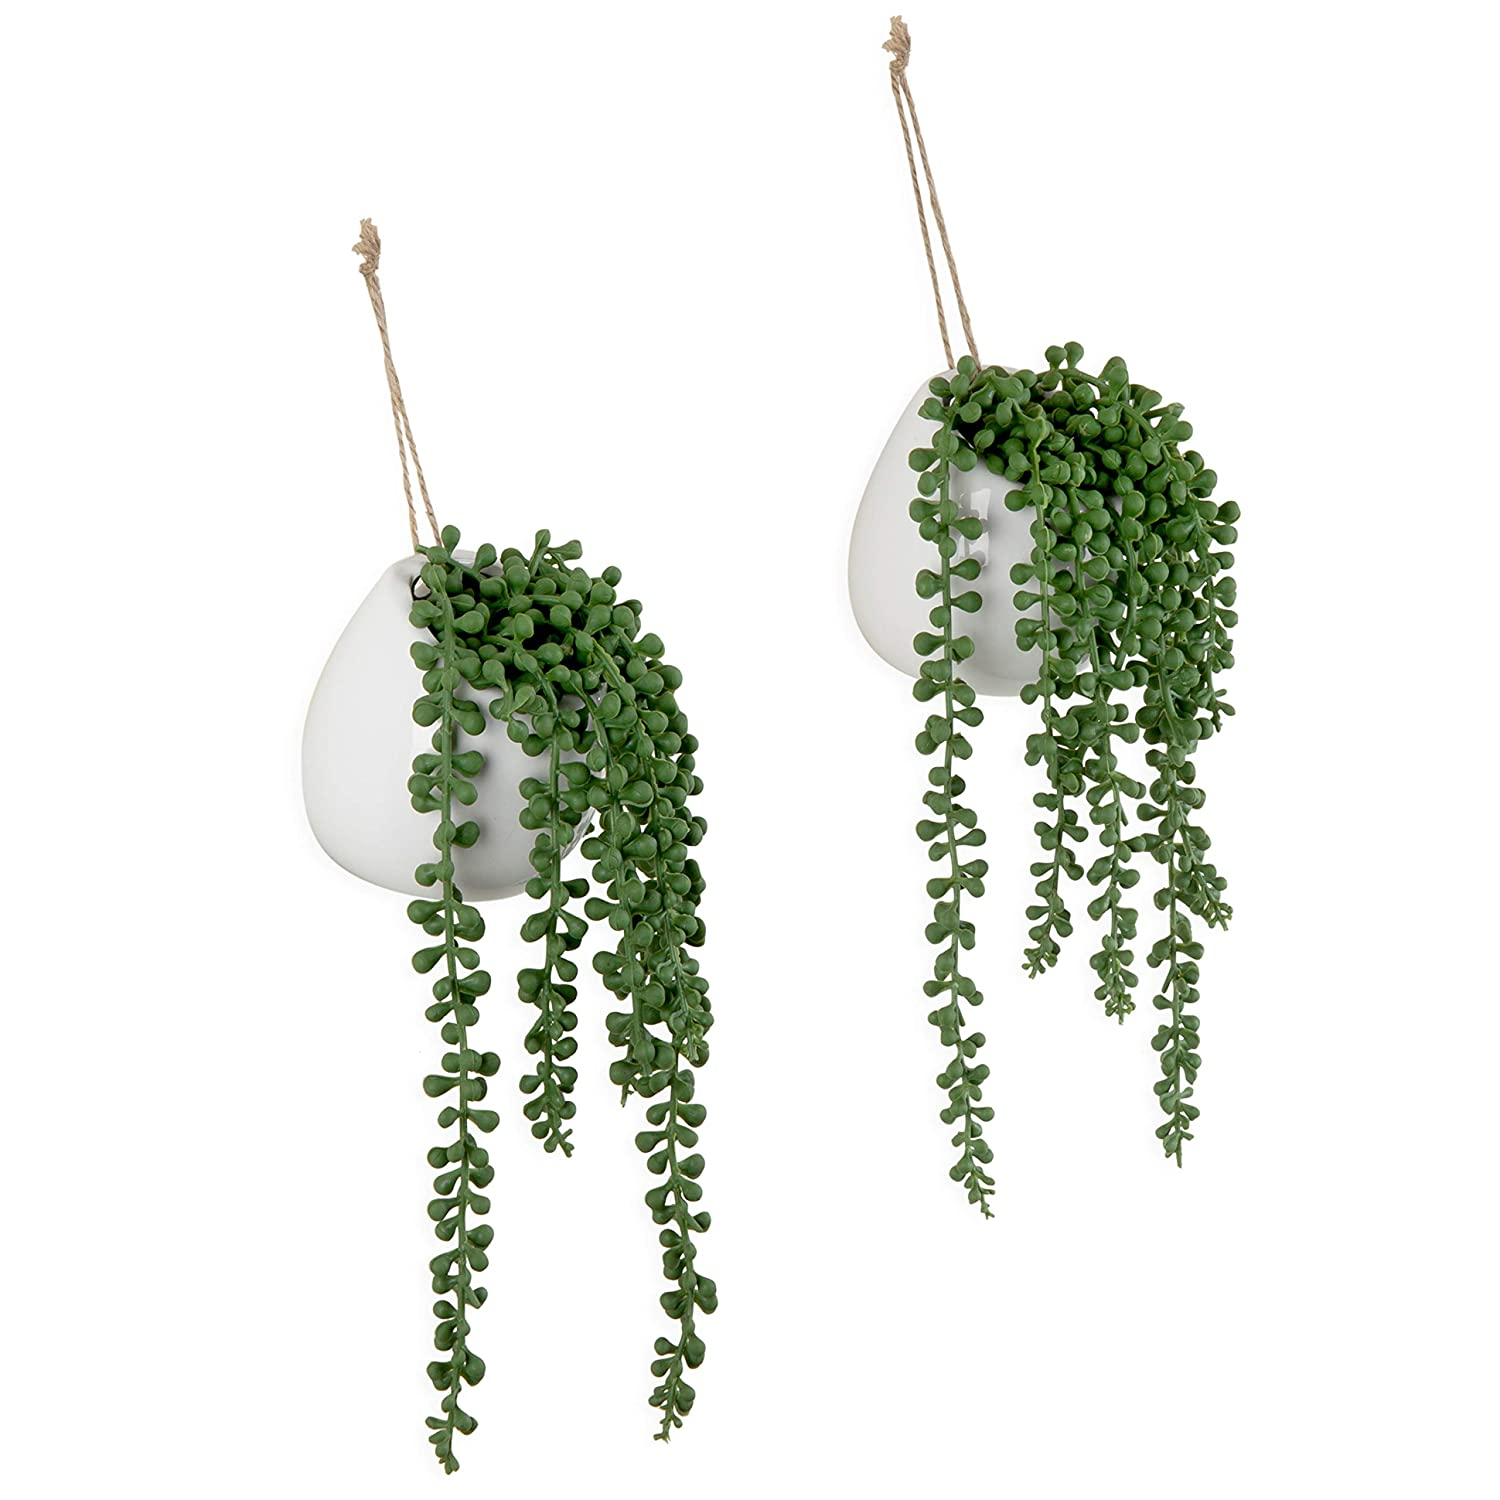 MyGift Artificial String of Pearls Plants in White Ceramic Wall-Hanging Planters Set of 2